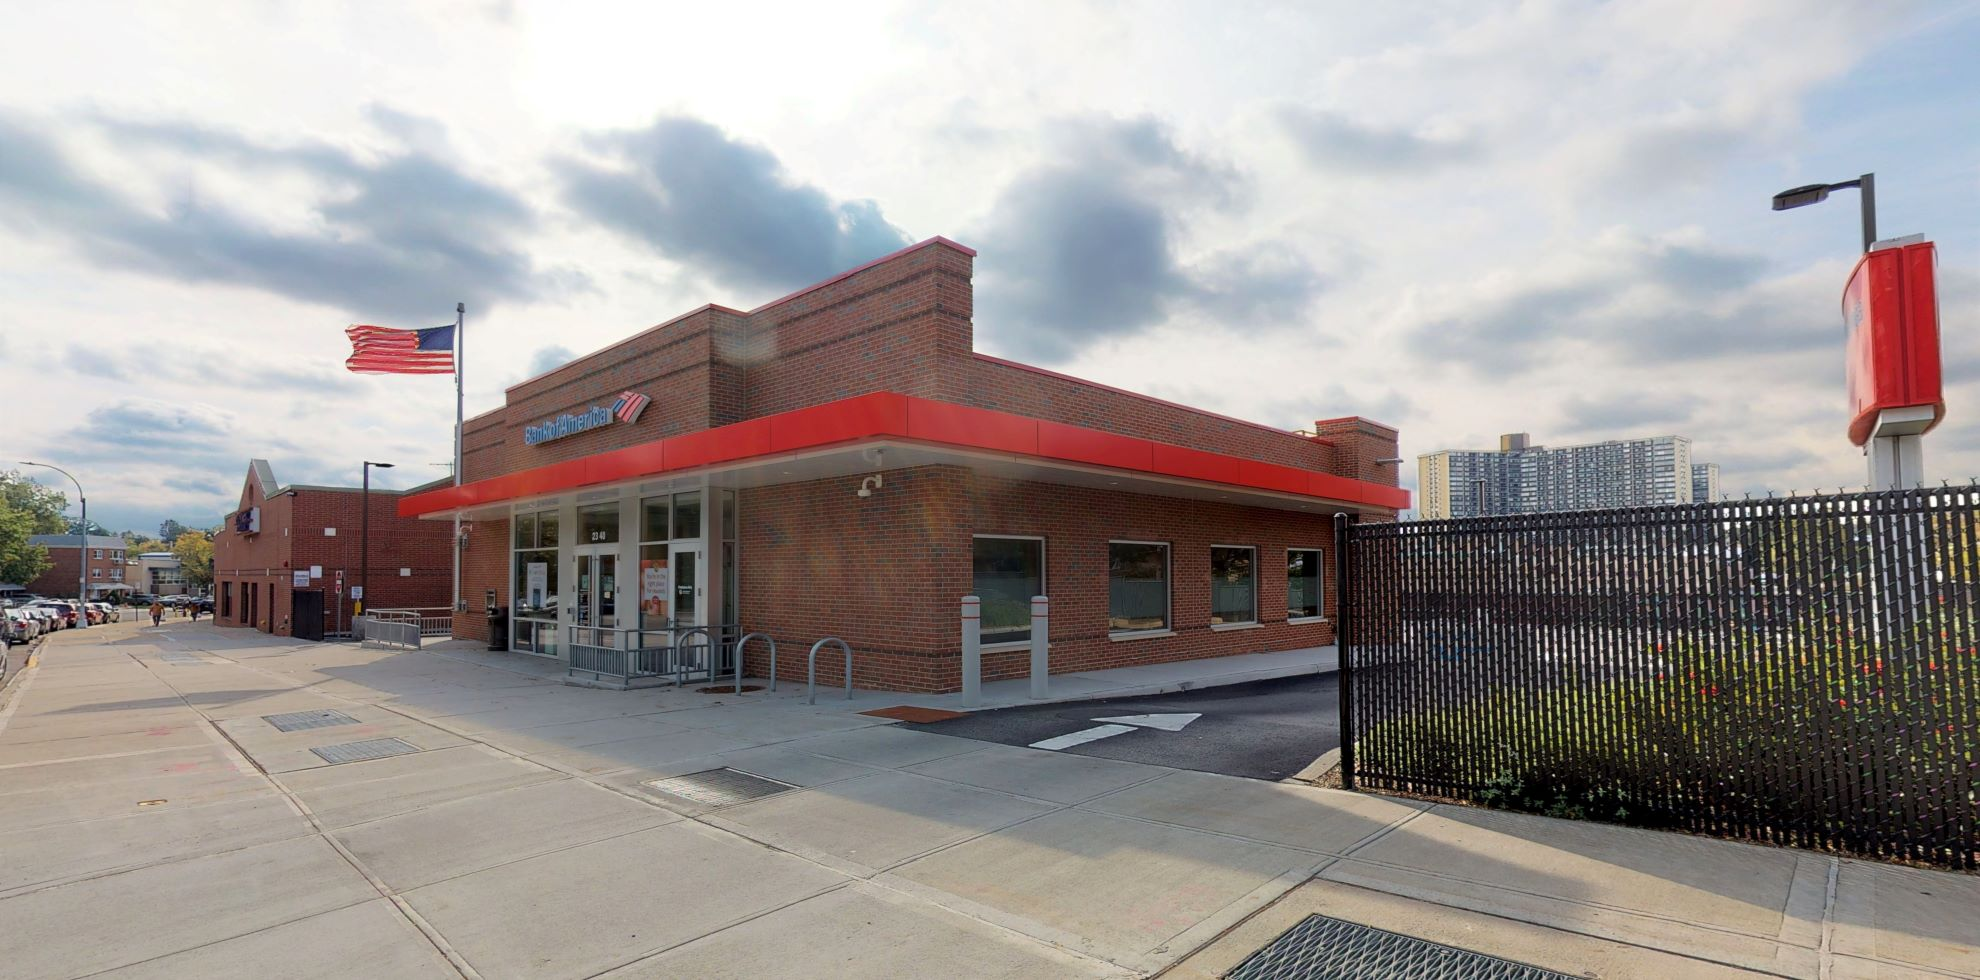 Bank of America financial center with drive-thru ATM   2340 Bell Blvd, Bayside, NY 11360